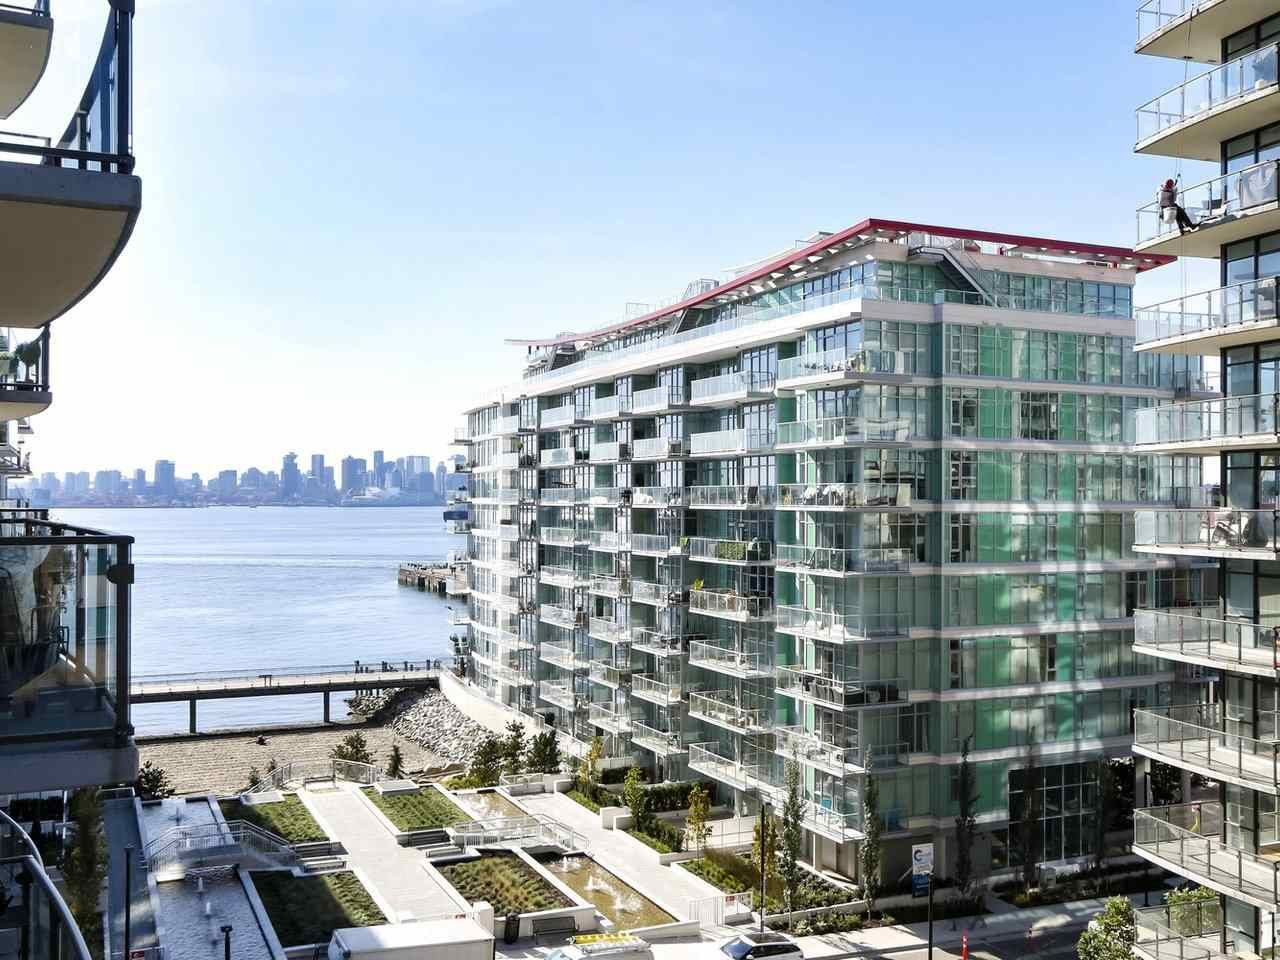 """Photo 18: Photos: 608 172 VICTORY SHIP Way in North Vancouver: Lower Lonsdale Condo for sale in """"Atrium at the Pier"""" : MLS®# R2454404"""